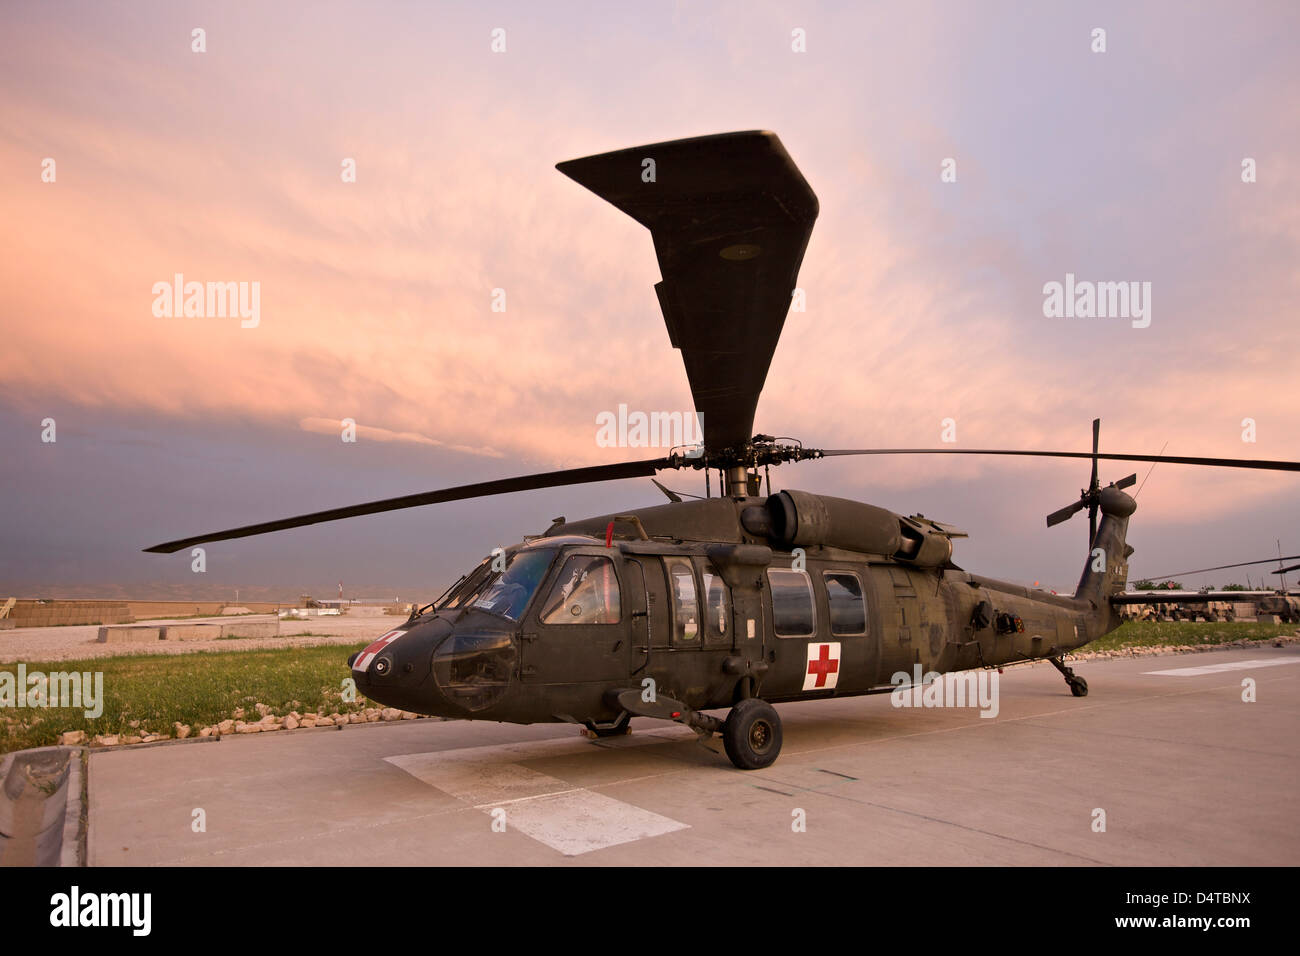 A UH-60L Black Hawk medevac helicopter parked on its pad at the German PRT in Northern Afghanistan. - Stock Image